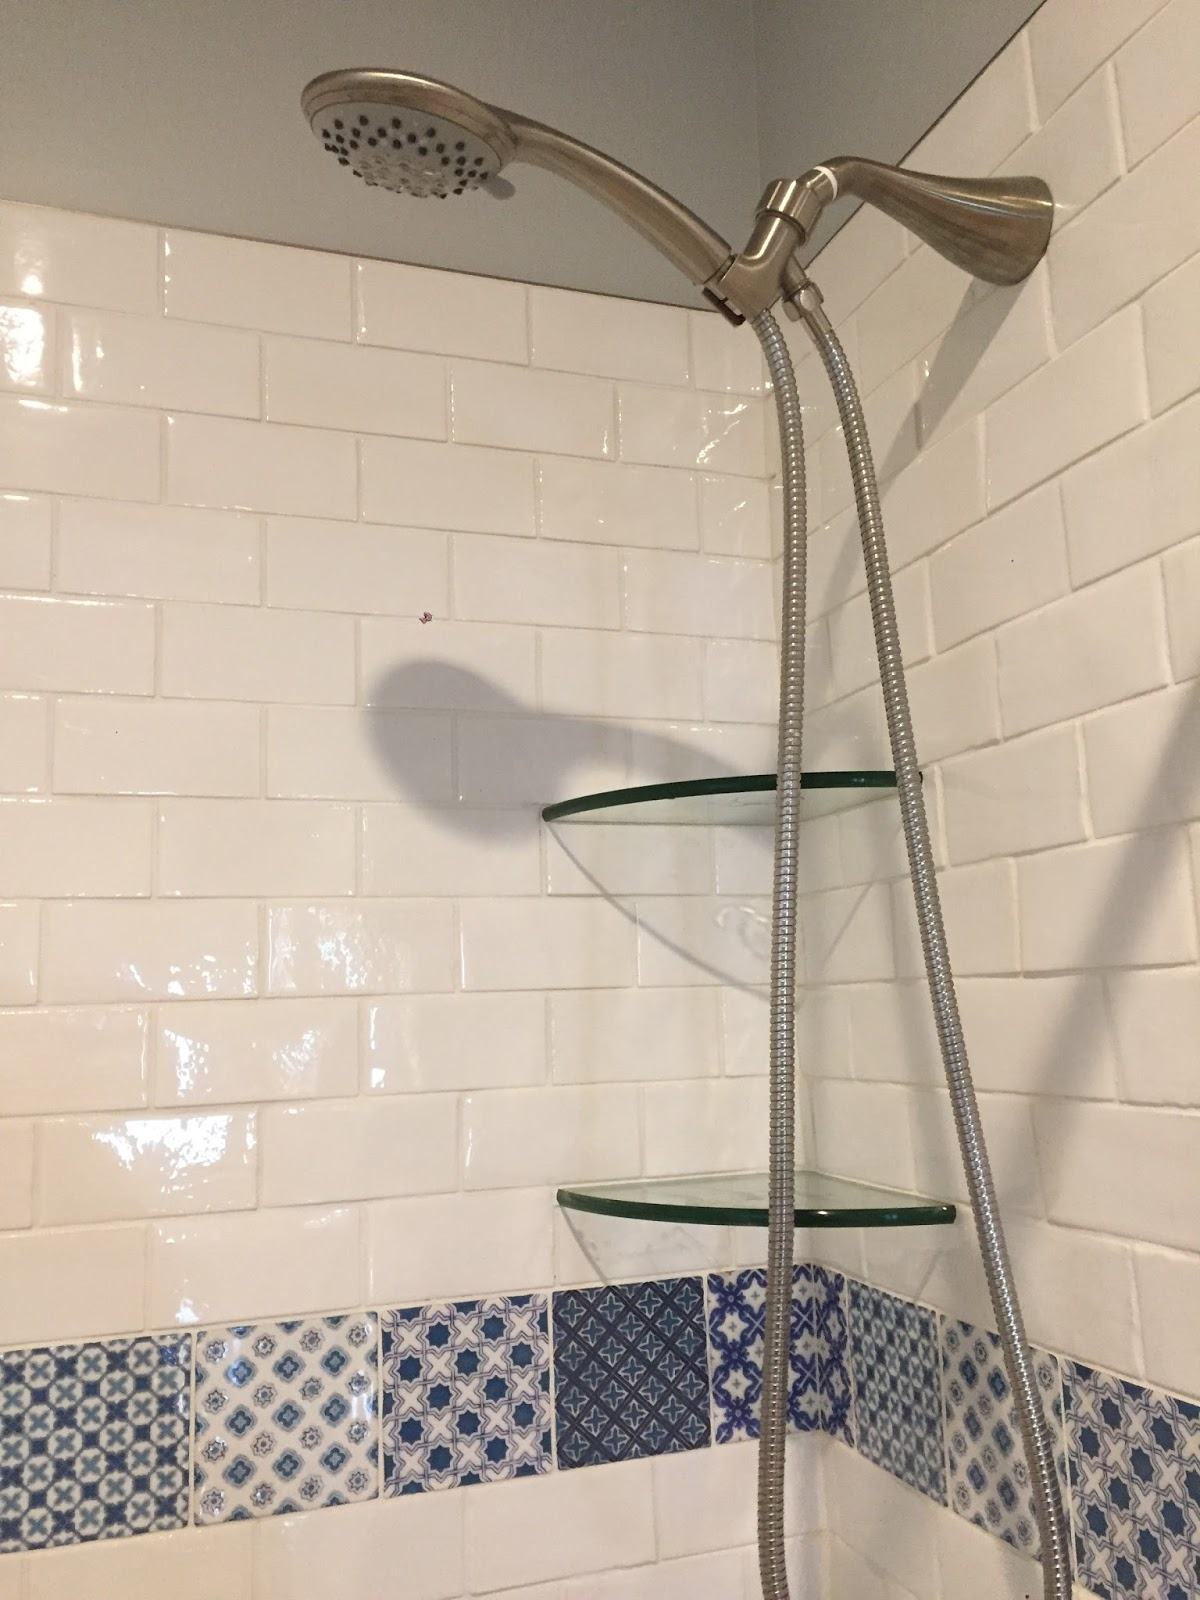 delicious rod in shower